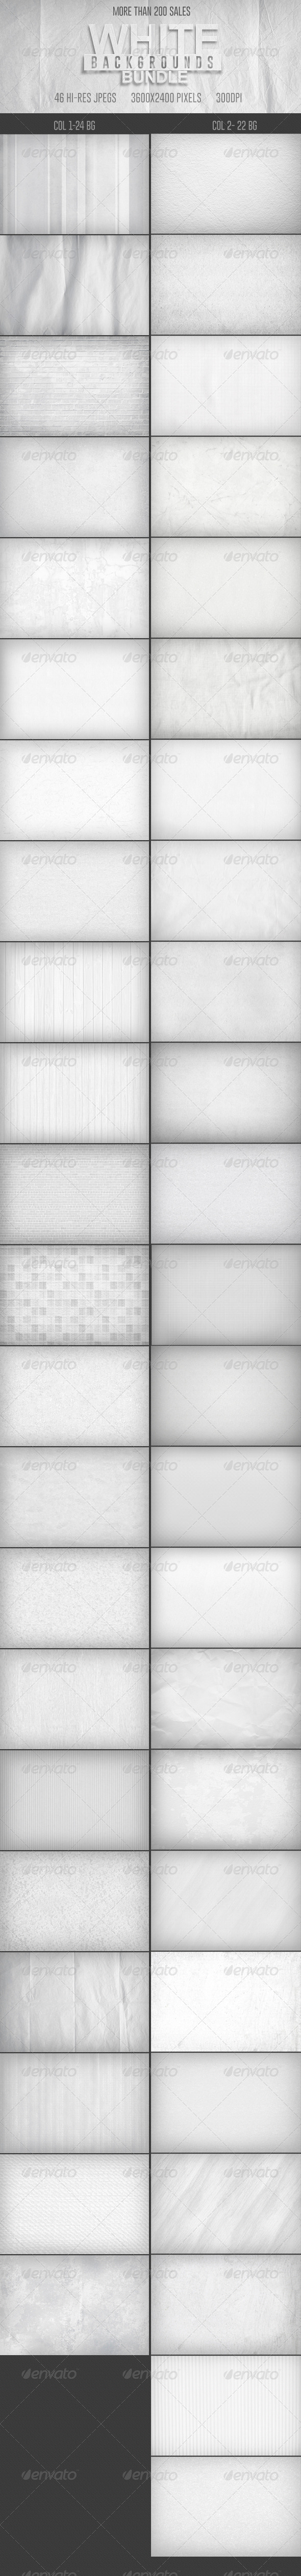 GraphicRiver 46 White Backgrounds Bundle 7228618